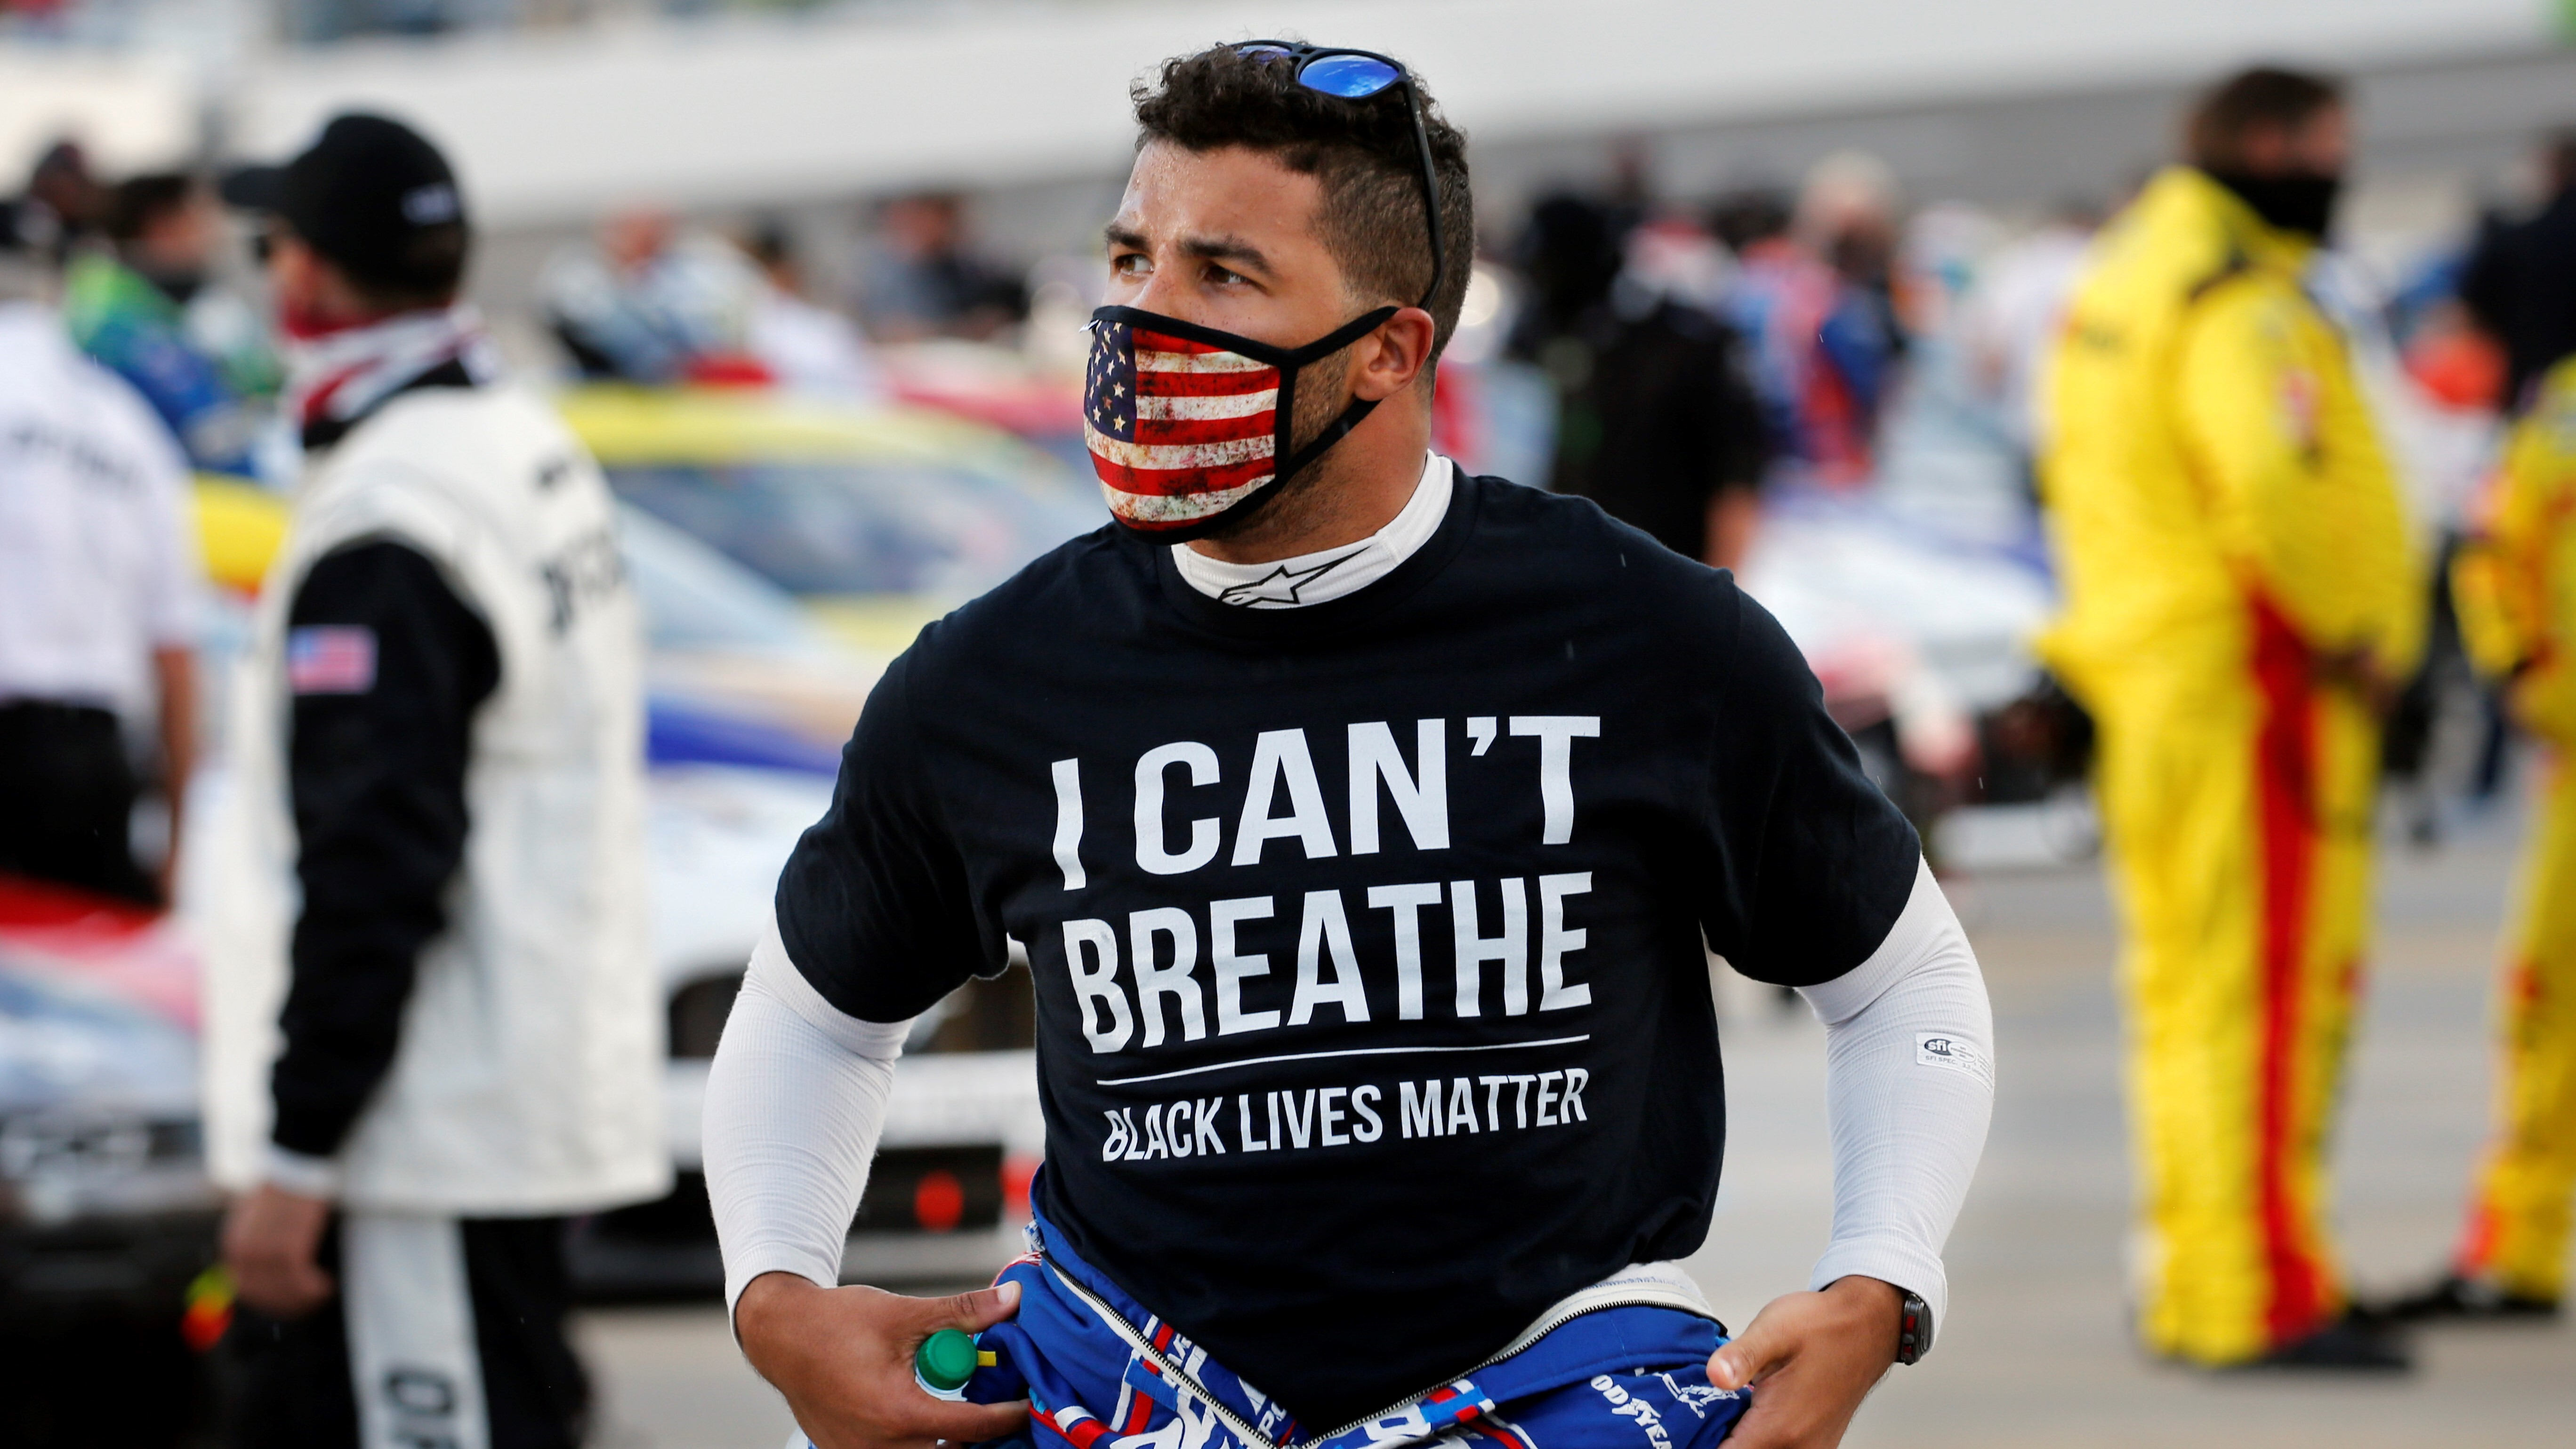 it s not about you driver bubba wallace proud of nascar s decision to ban confederate flags from races ray ciccarelli says he ll quit sport over ruling abc7 new york 2